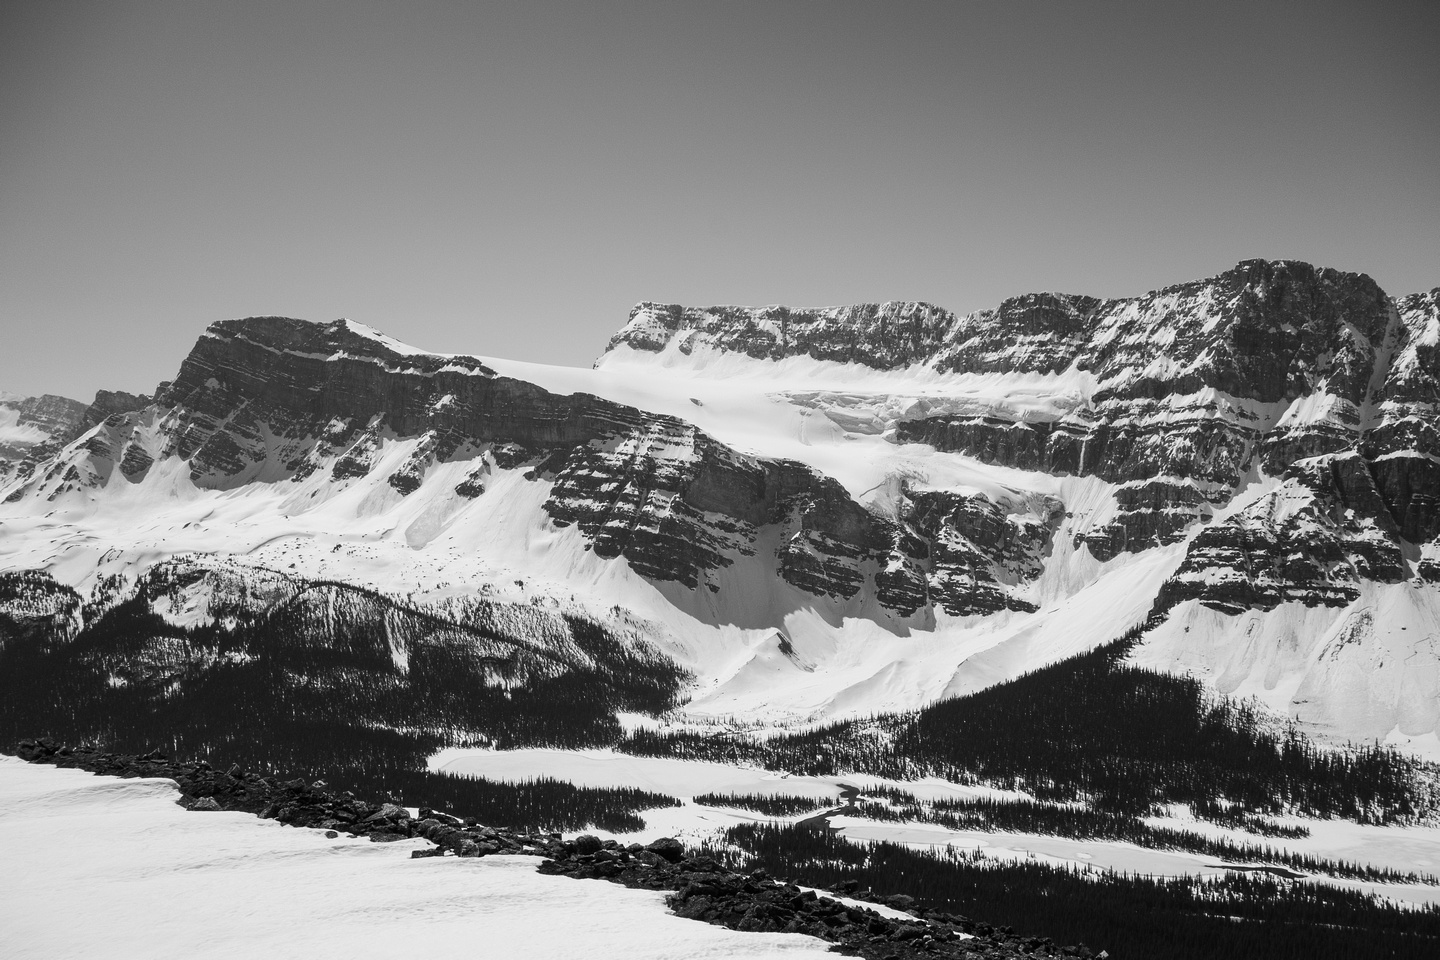 Unnamed and Crowfoot Mountain to the right with Crowfoot Glacier between.